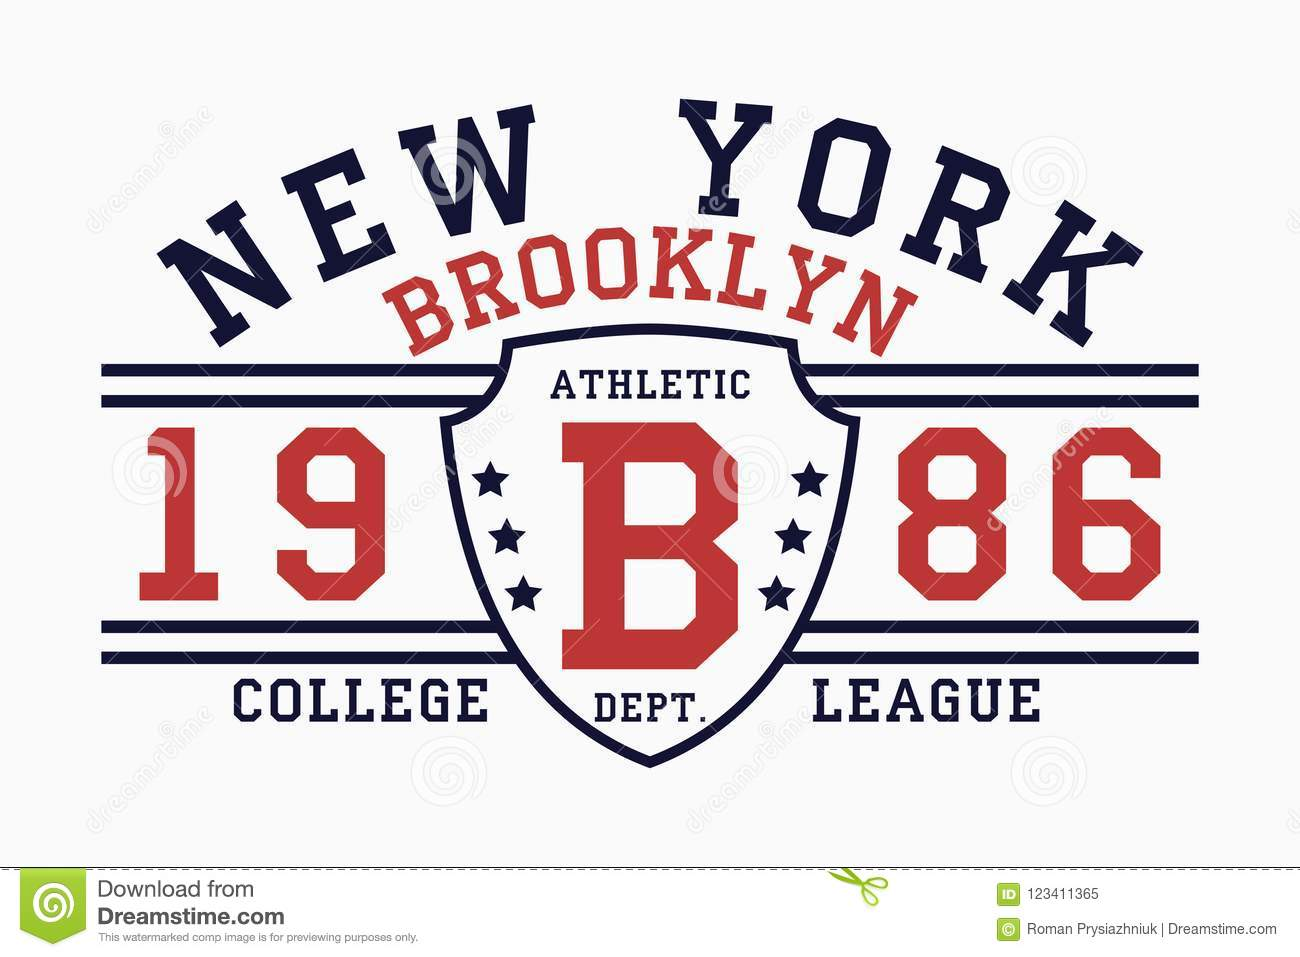 cabed2908 Brooklyn, New York slogan typography graphics for t-shirt. College print for  apparel. Vector.